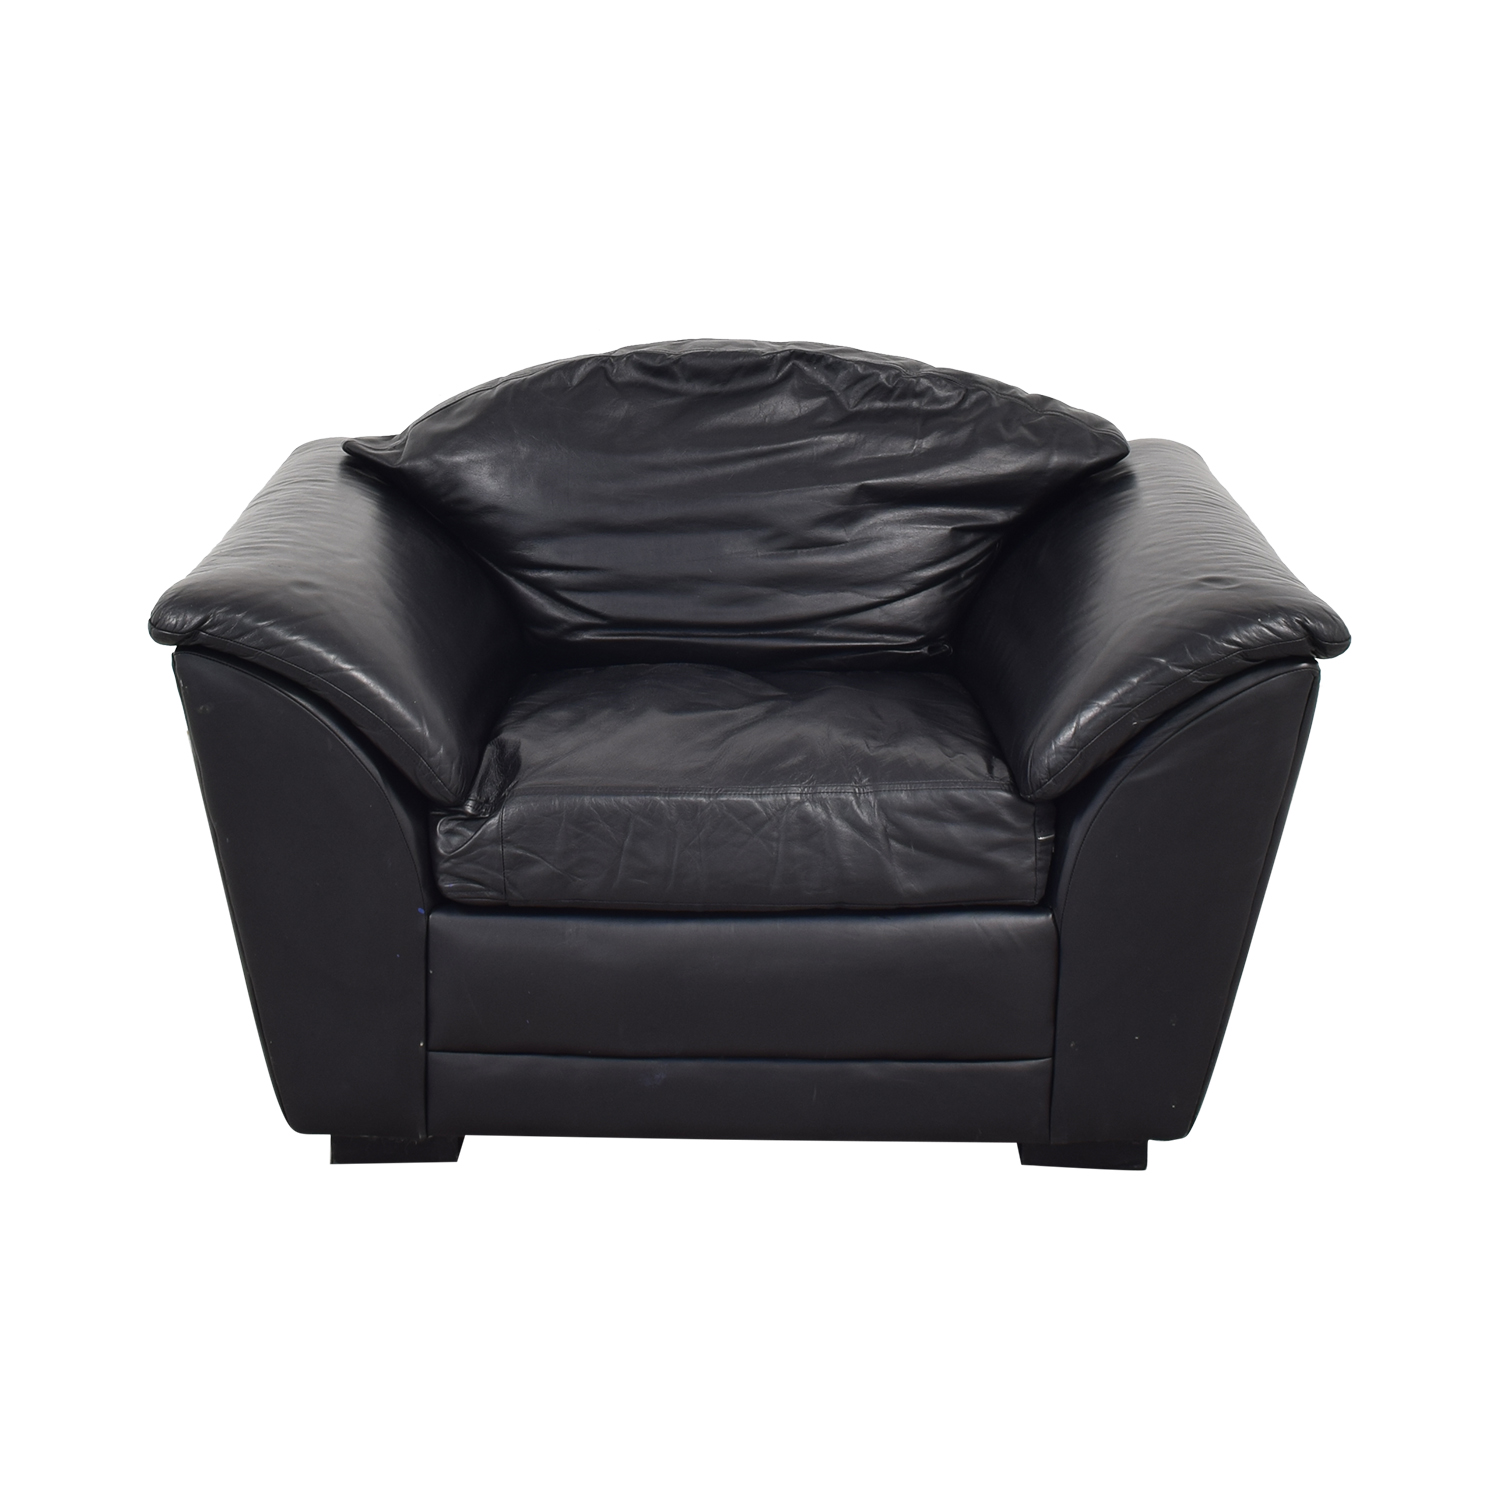 buy Castro Convertibles Leather Chair Castro Convertibles